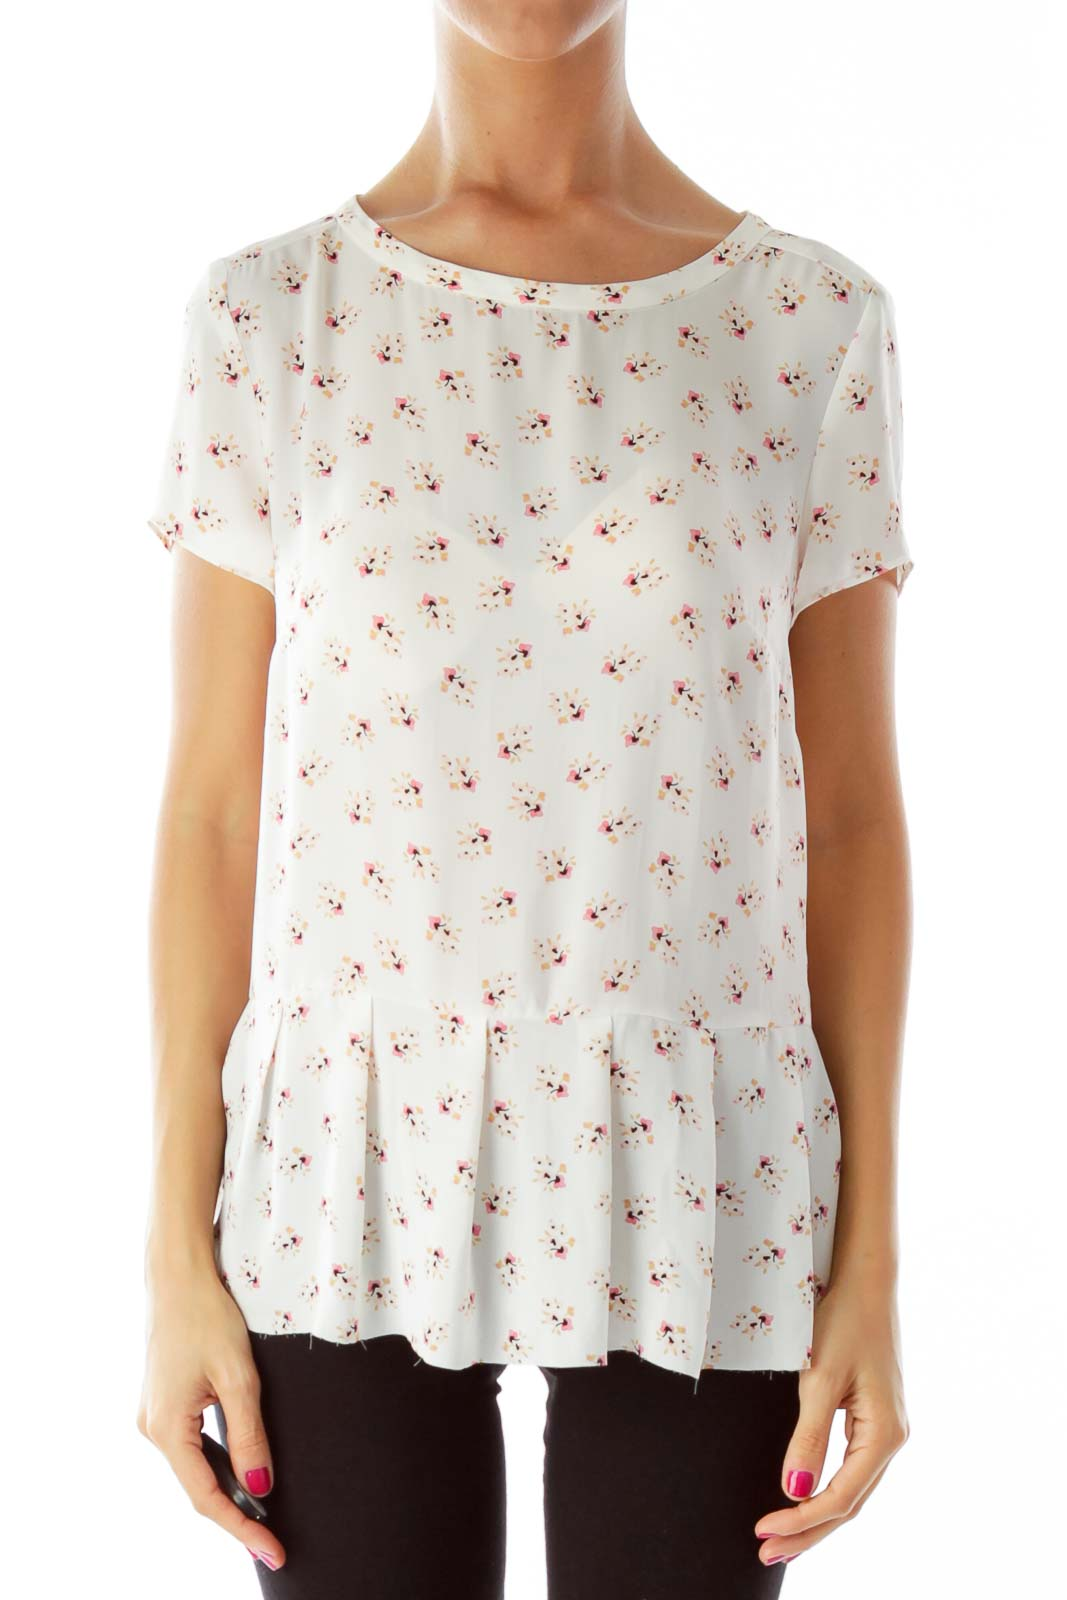 Shop ann taylor loft clothing and handbags at silkroll trade with us pink flower print blouse mightylinksfo